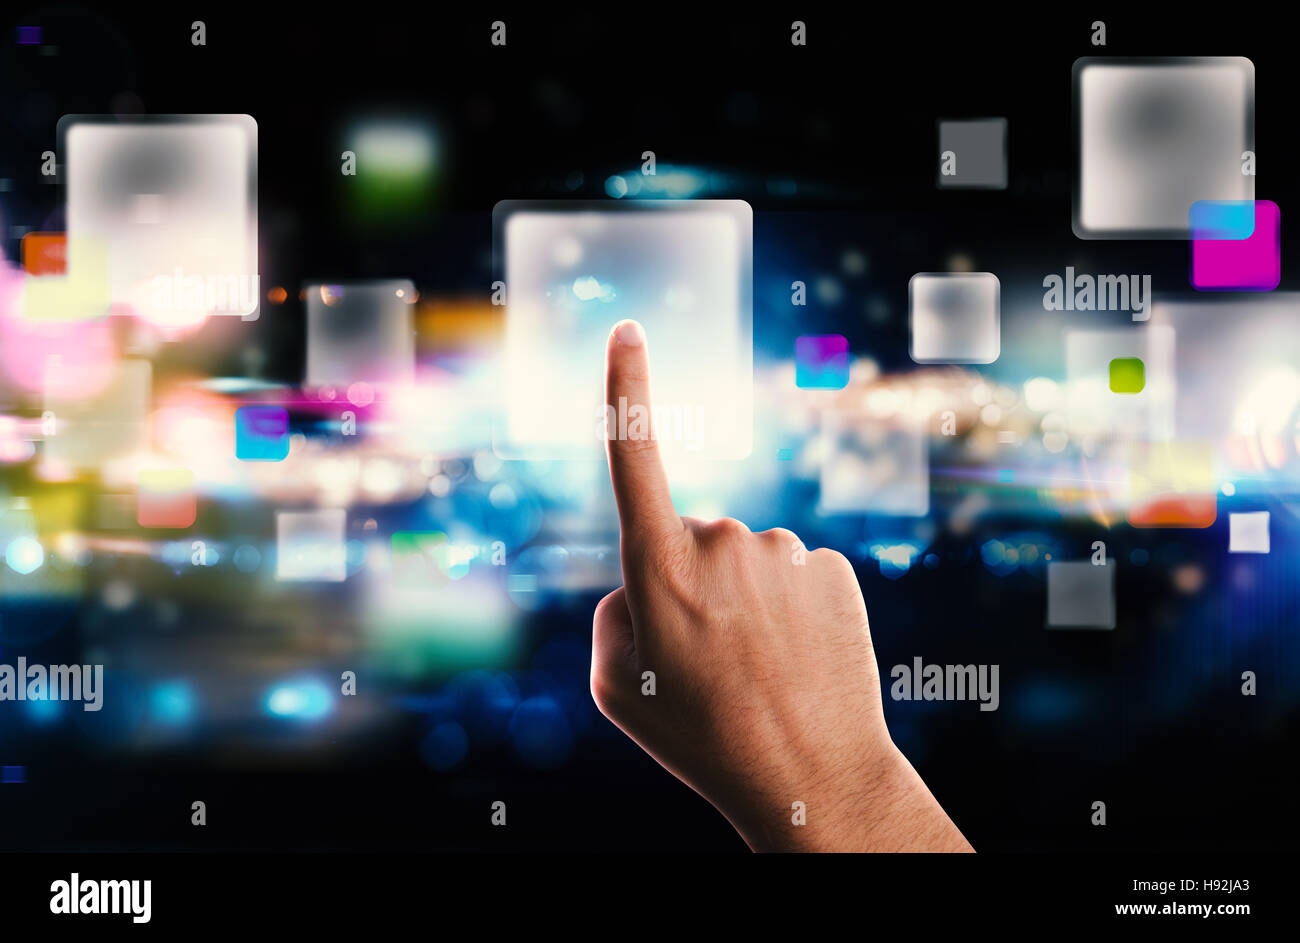 Streaming screen technology - Stock Image